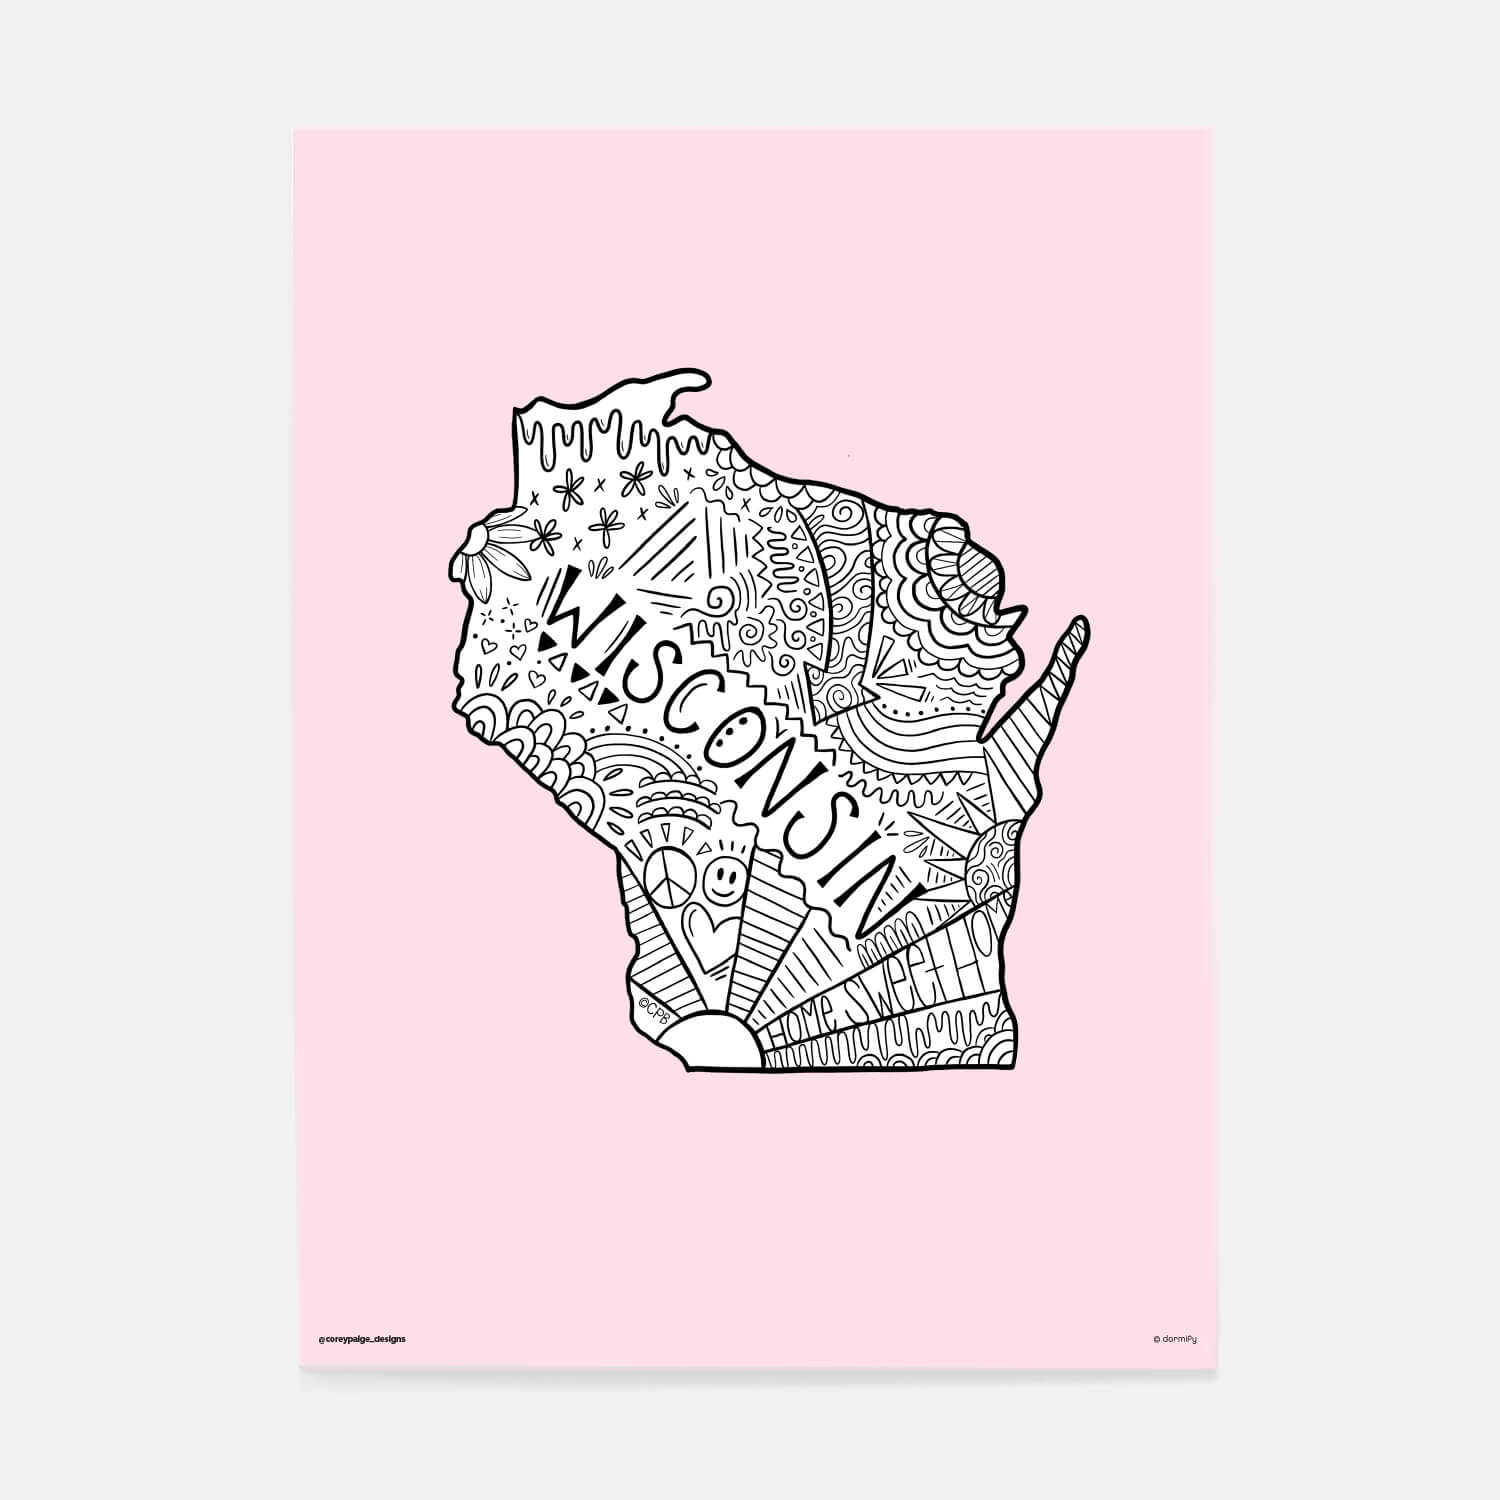 wisconsin state pride poster by corey paige - light pink 16x20 | wall